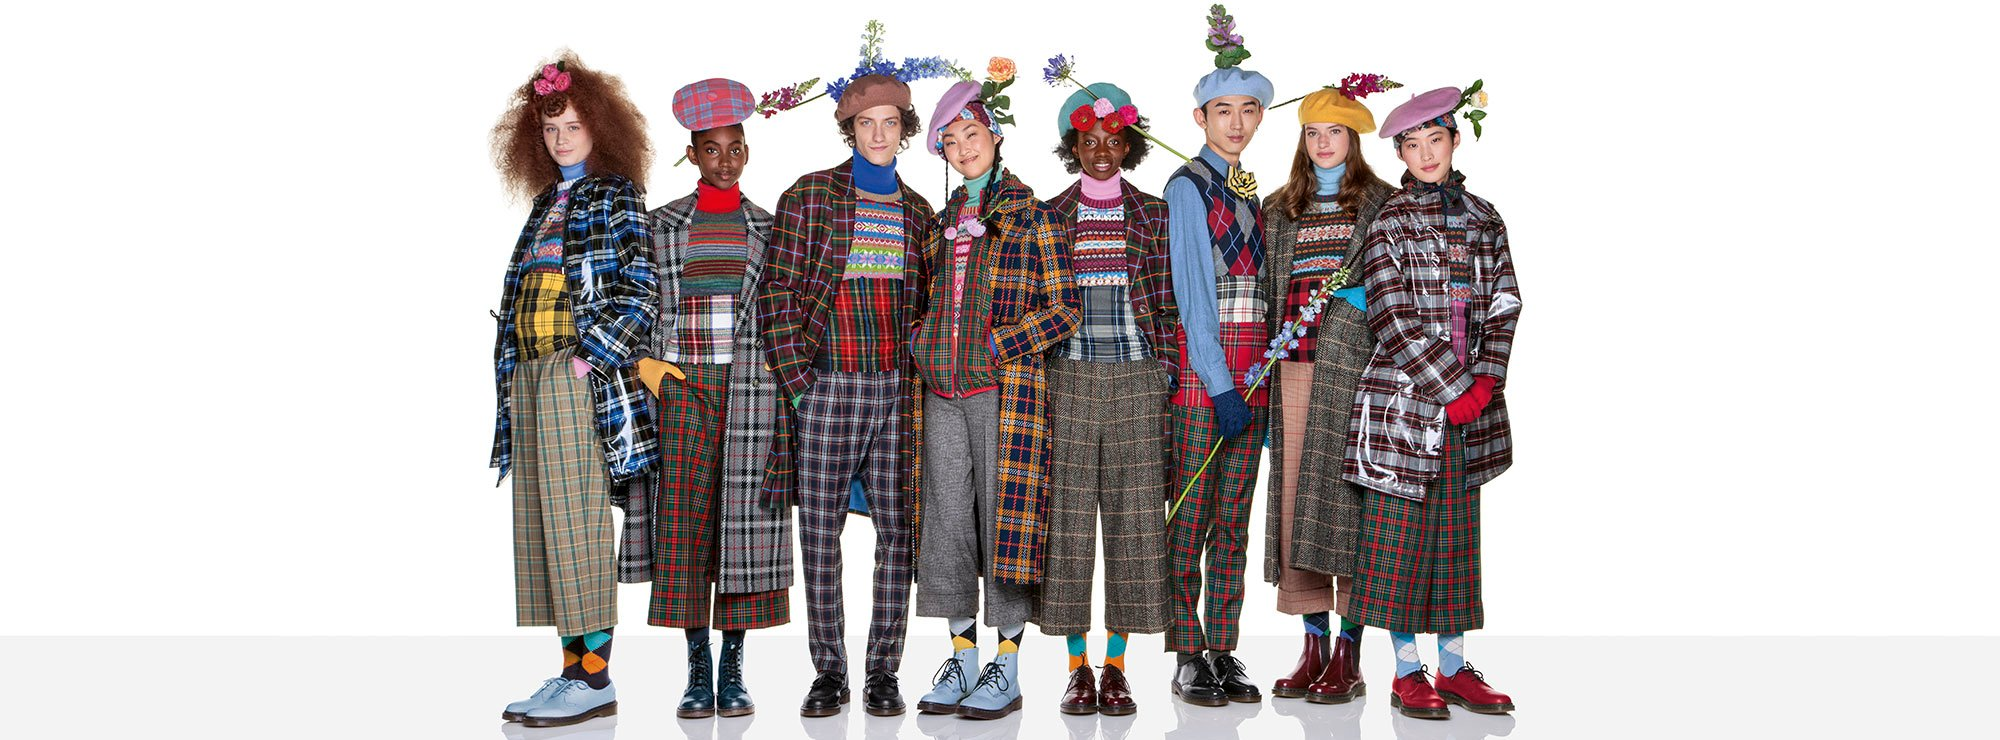 United colors of benetton official site online shop check out the collection fandeluxe Gallery